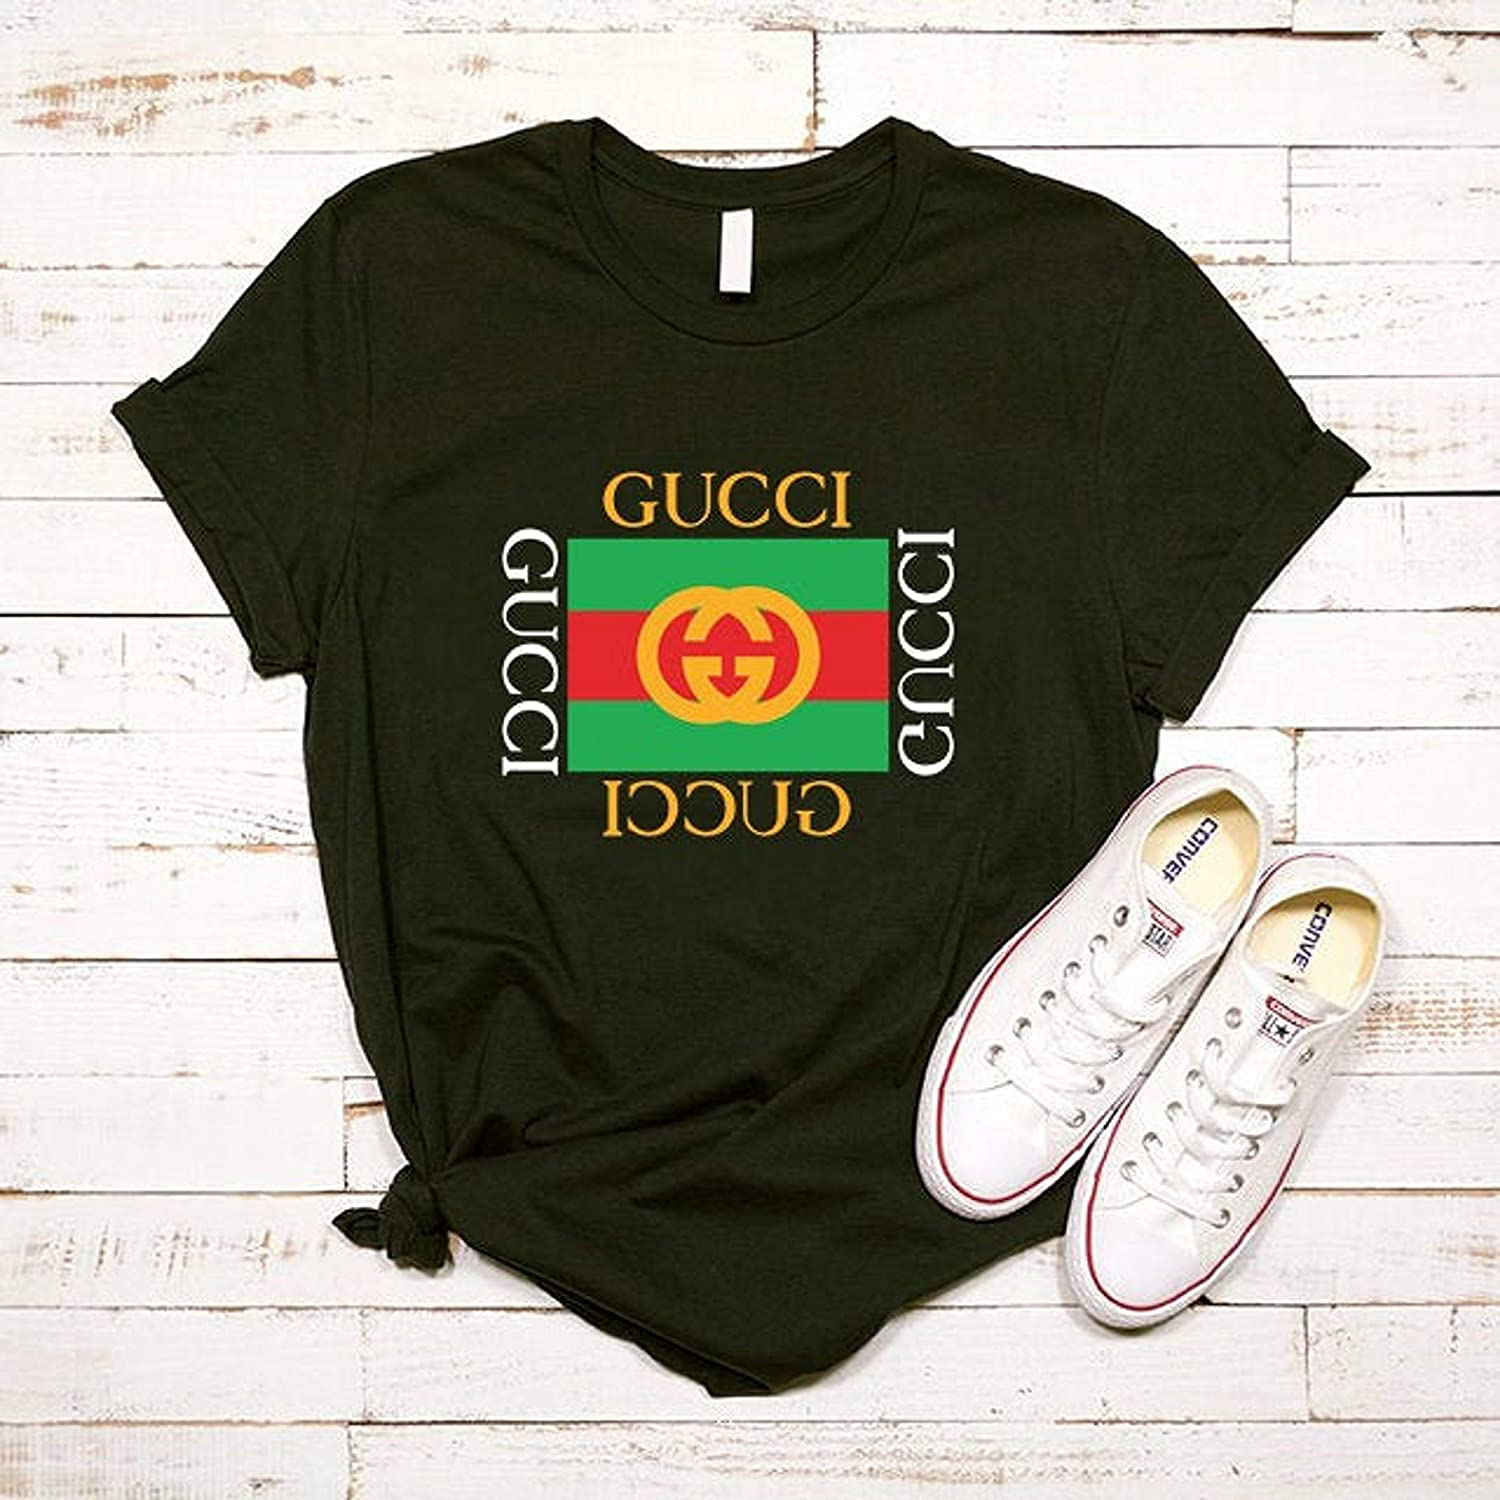 half off top-rated discount volume large Amazon.com: Gucci Shirt, Gucci Tshirt, Gucci Shirt T-shirt ...